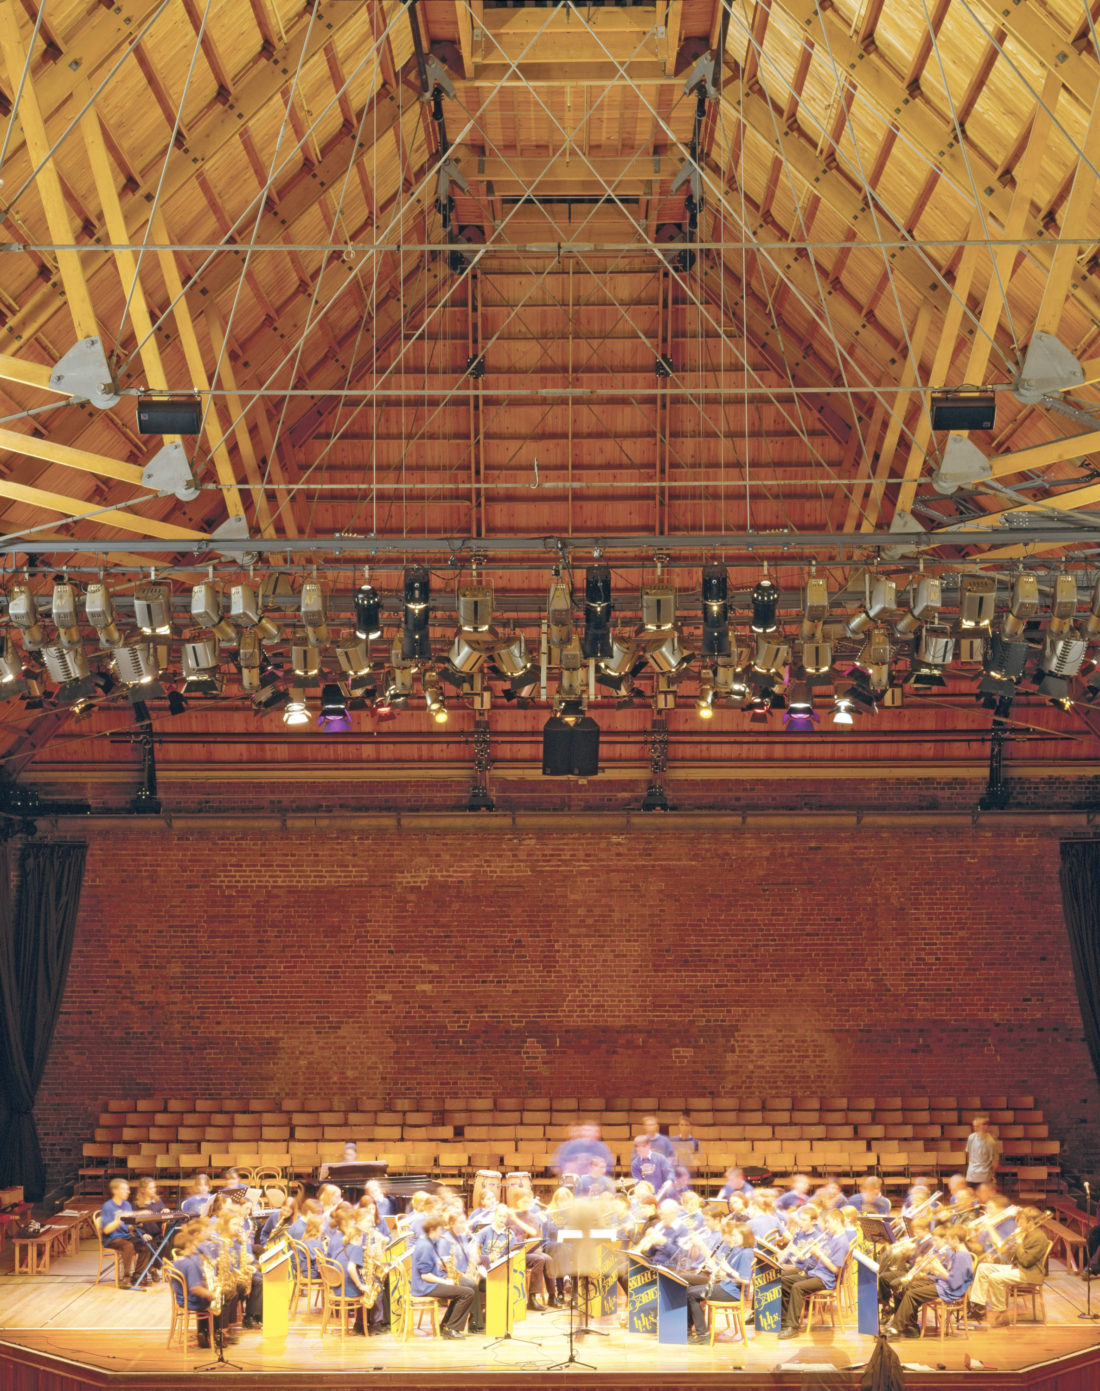 Snape Maltings Concert Hall 9